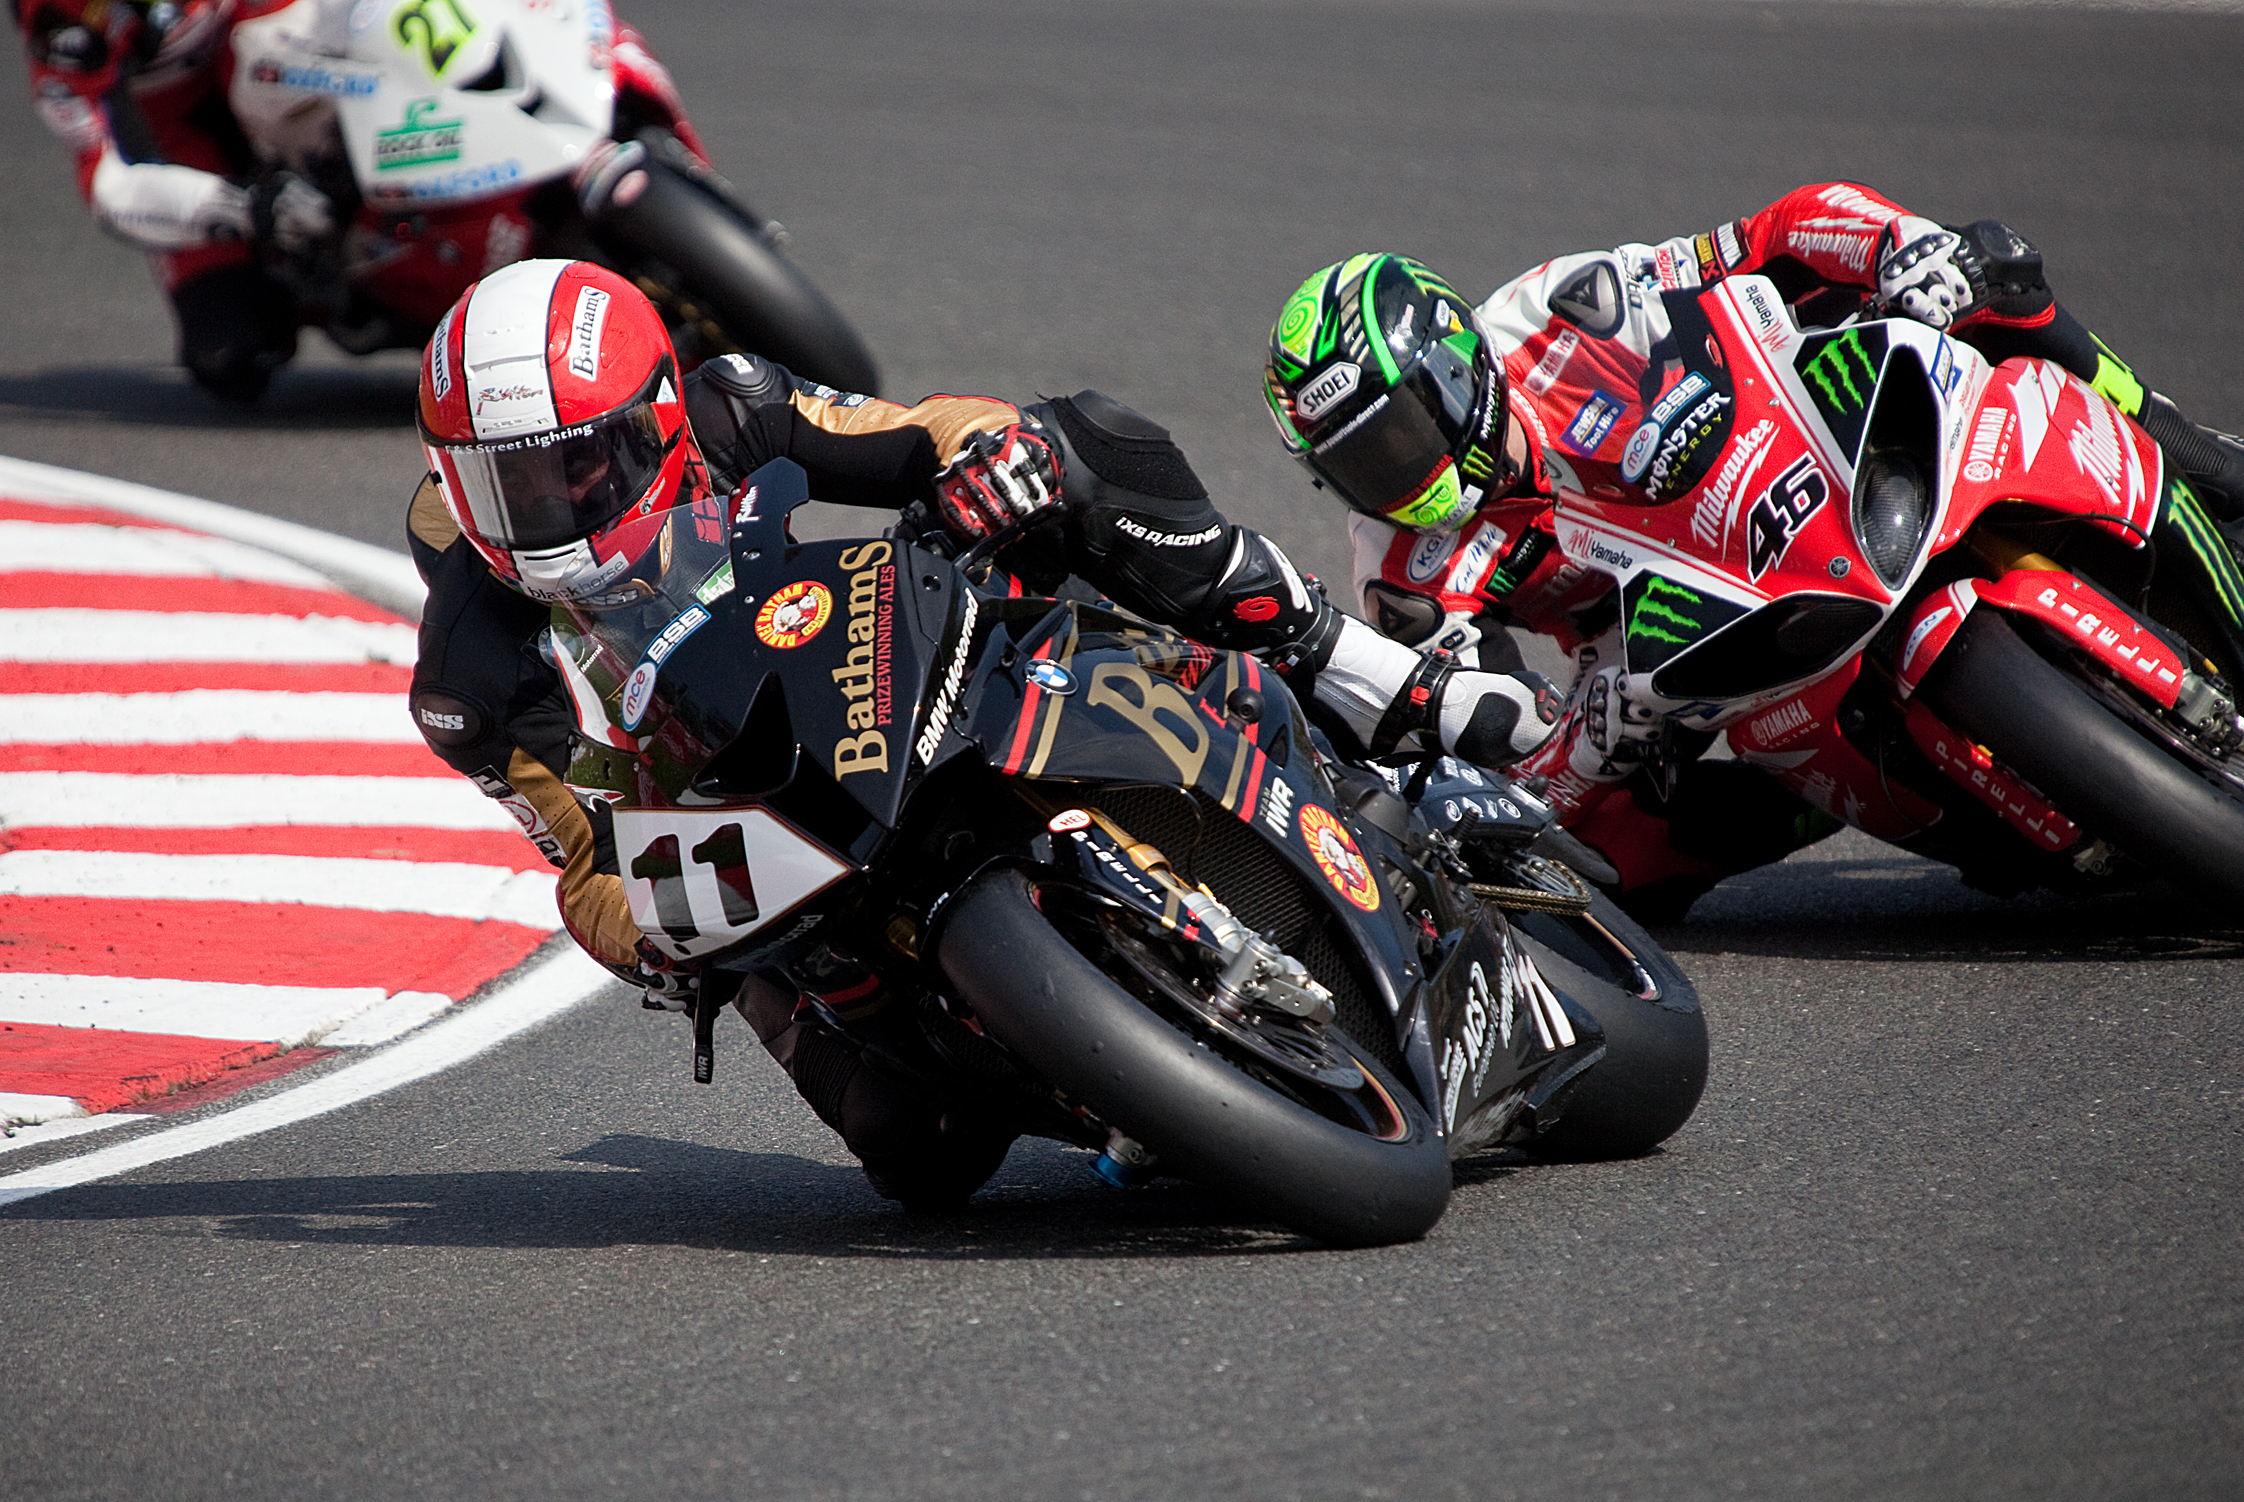 KIngswinford's Michael Rutter in action at Brands Ha